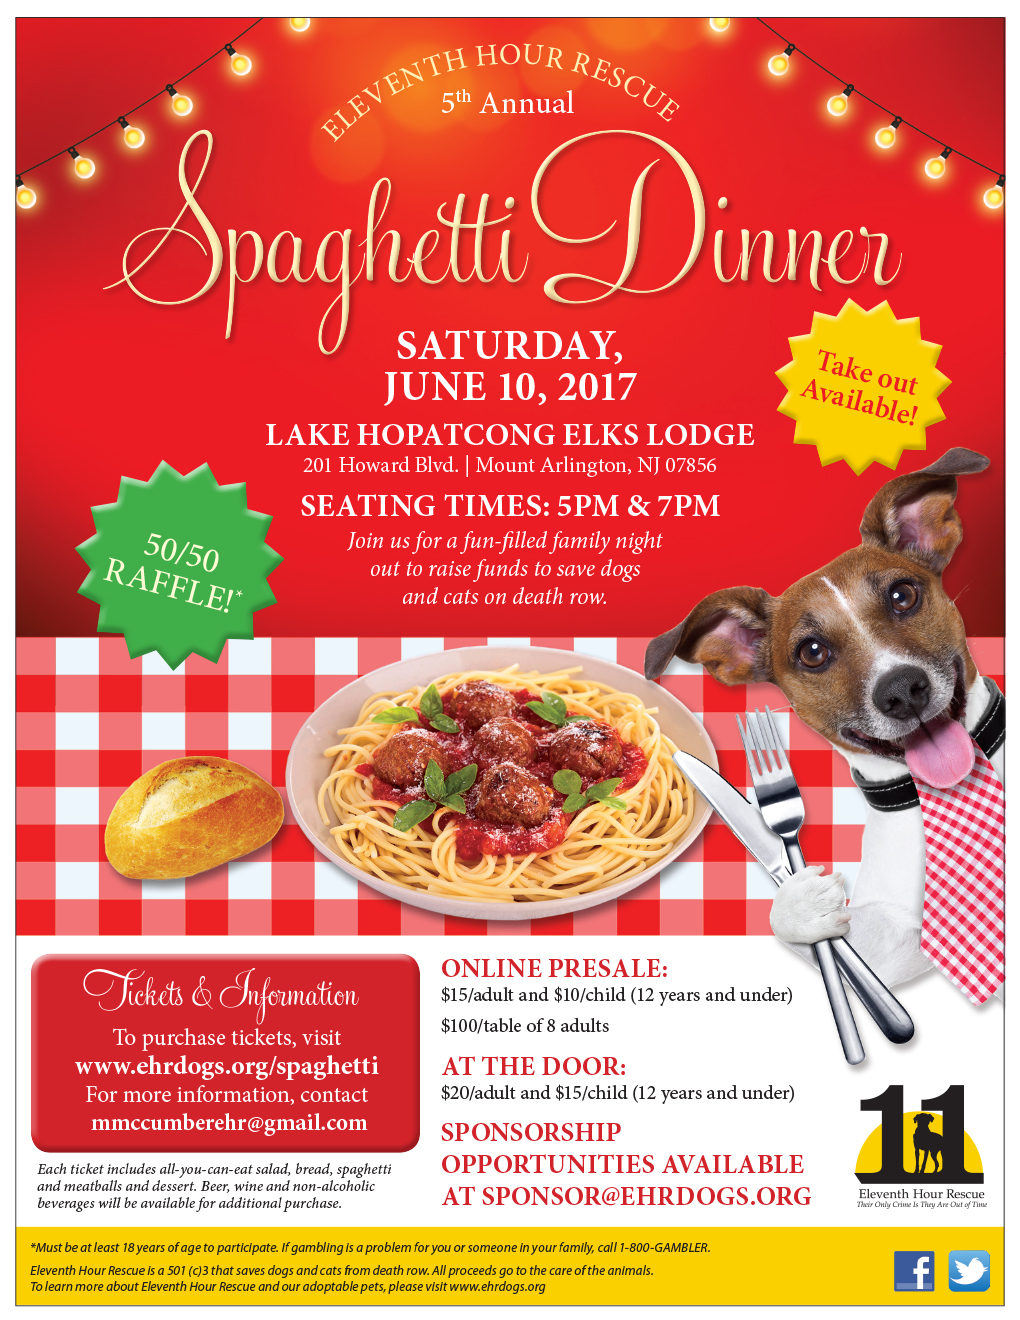 Eleventh Hour Rescue - Spaghetti Dinner @ Lake Hopatcong Elks Lodge | Mount Arlington | New Jersey | United States